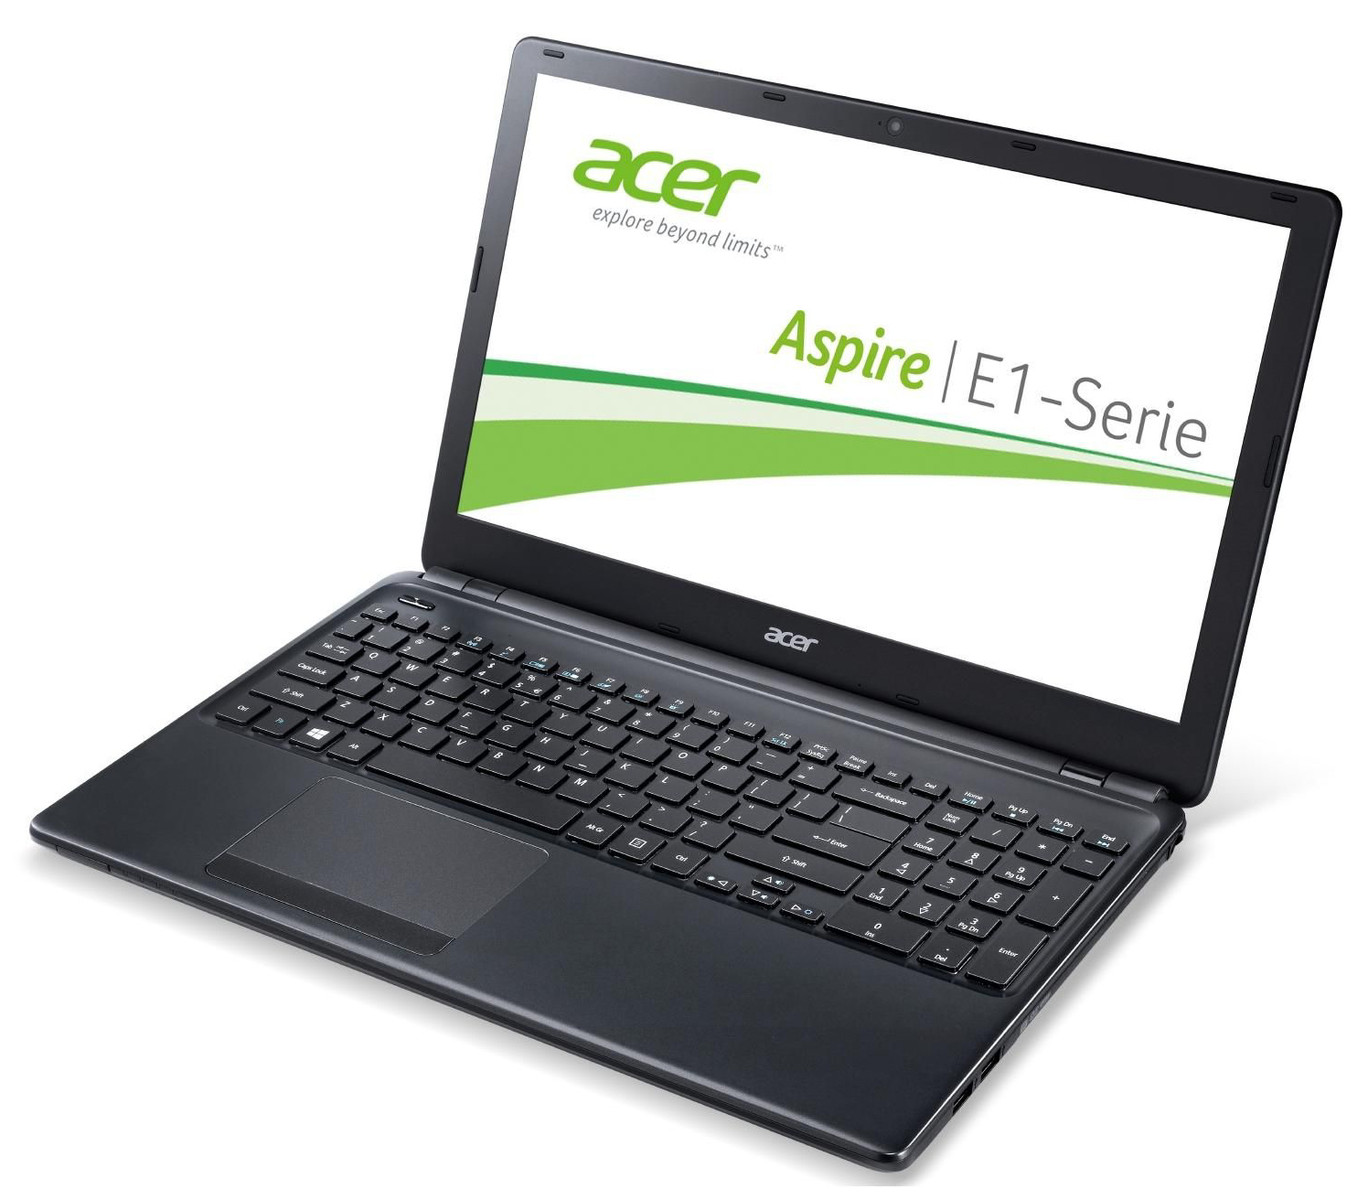 acer-e1-572-laptop-prices-in-pakistan[1]